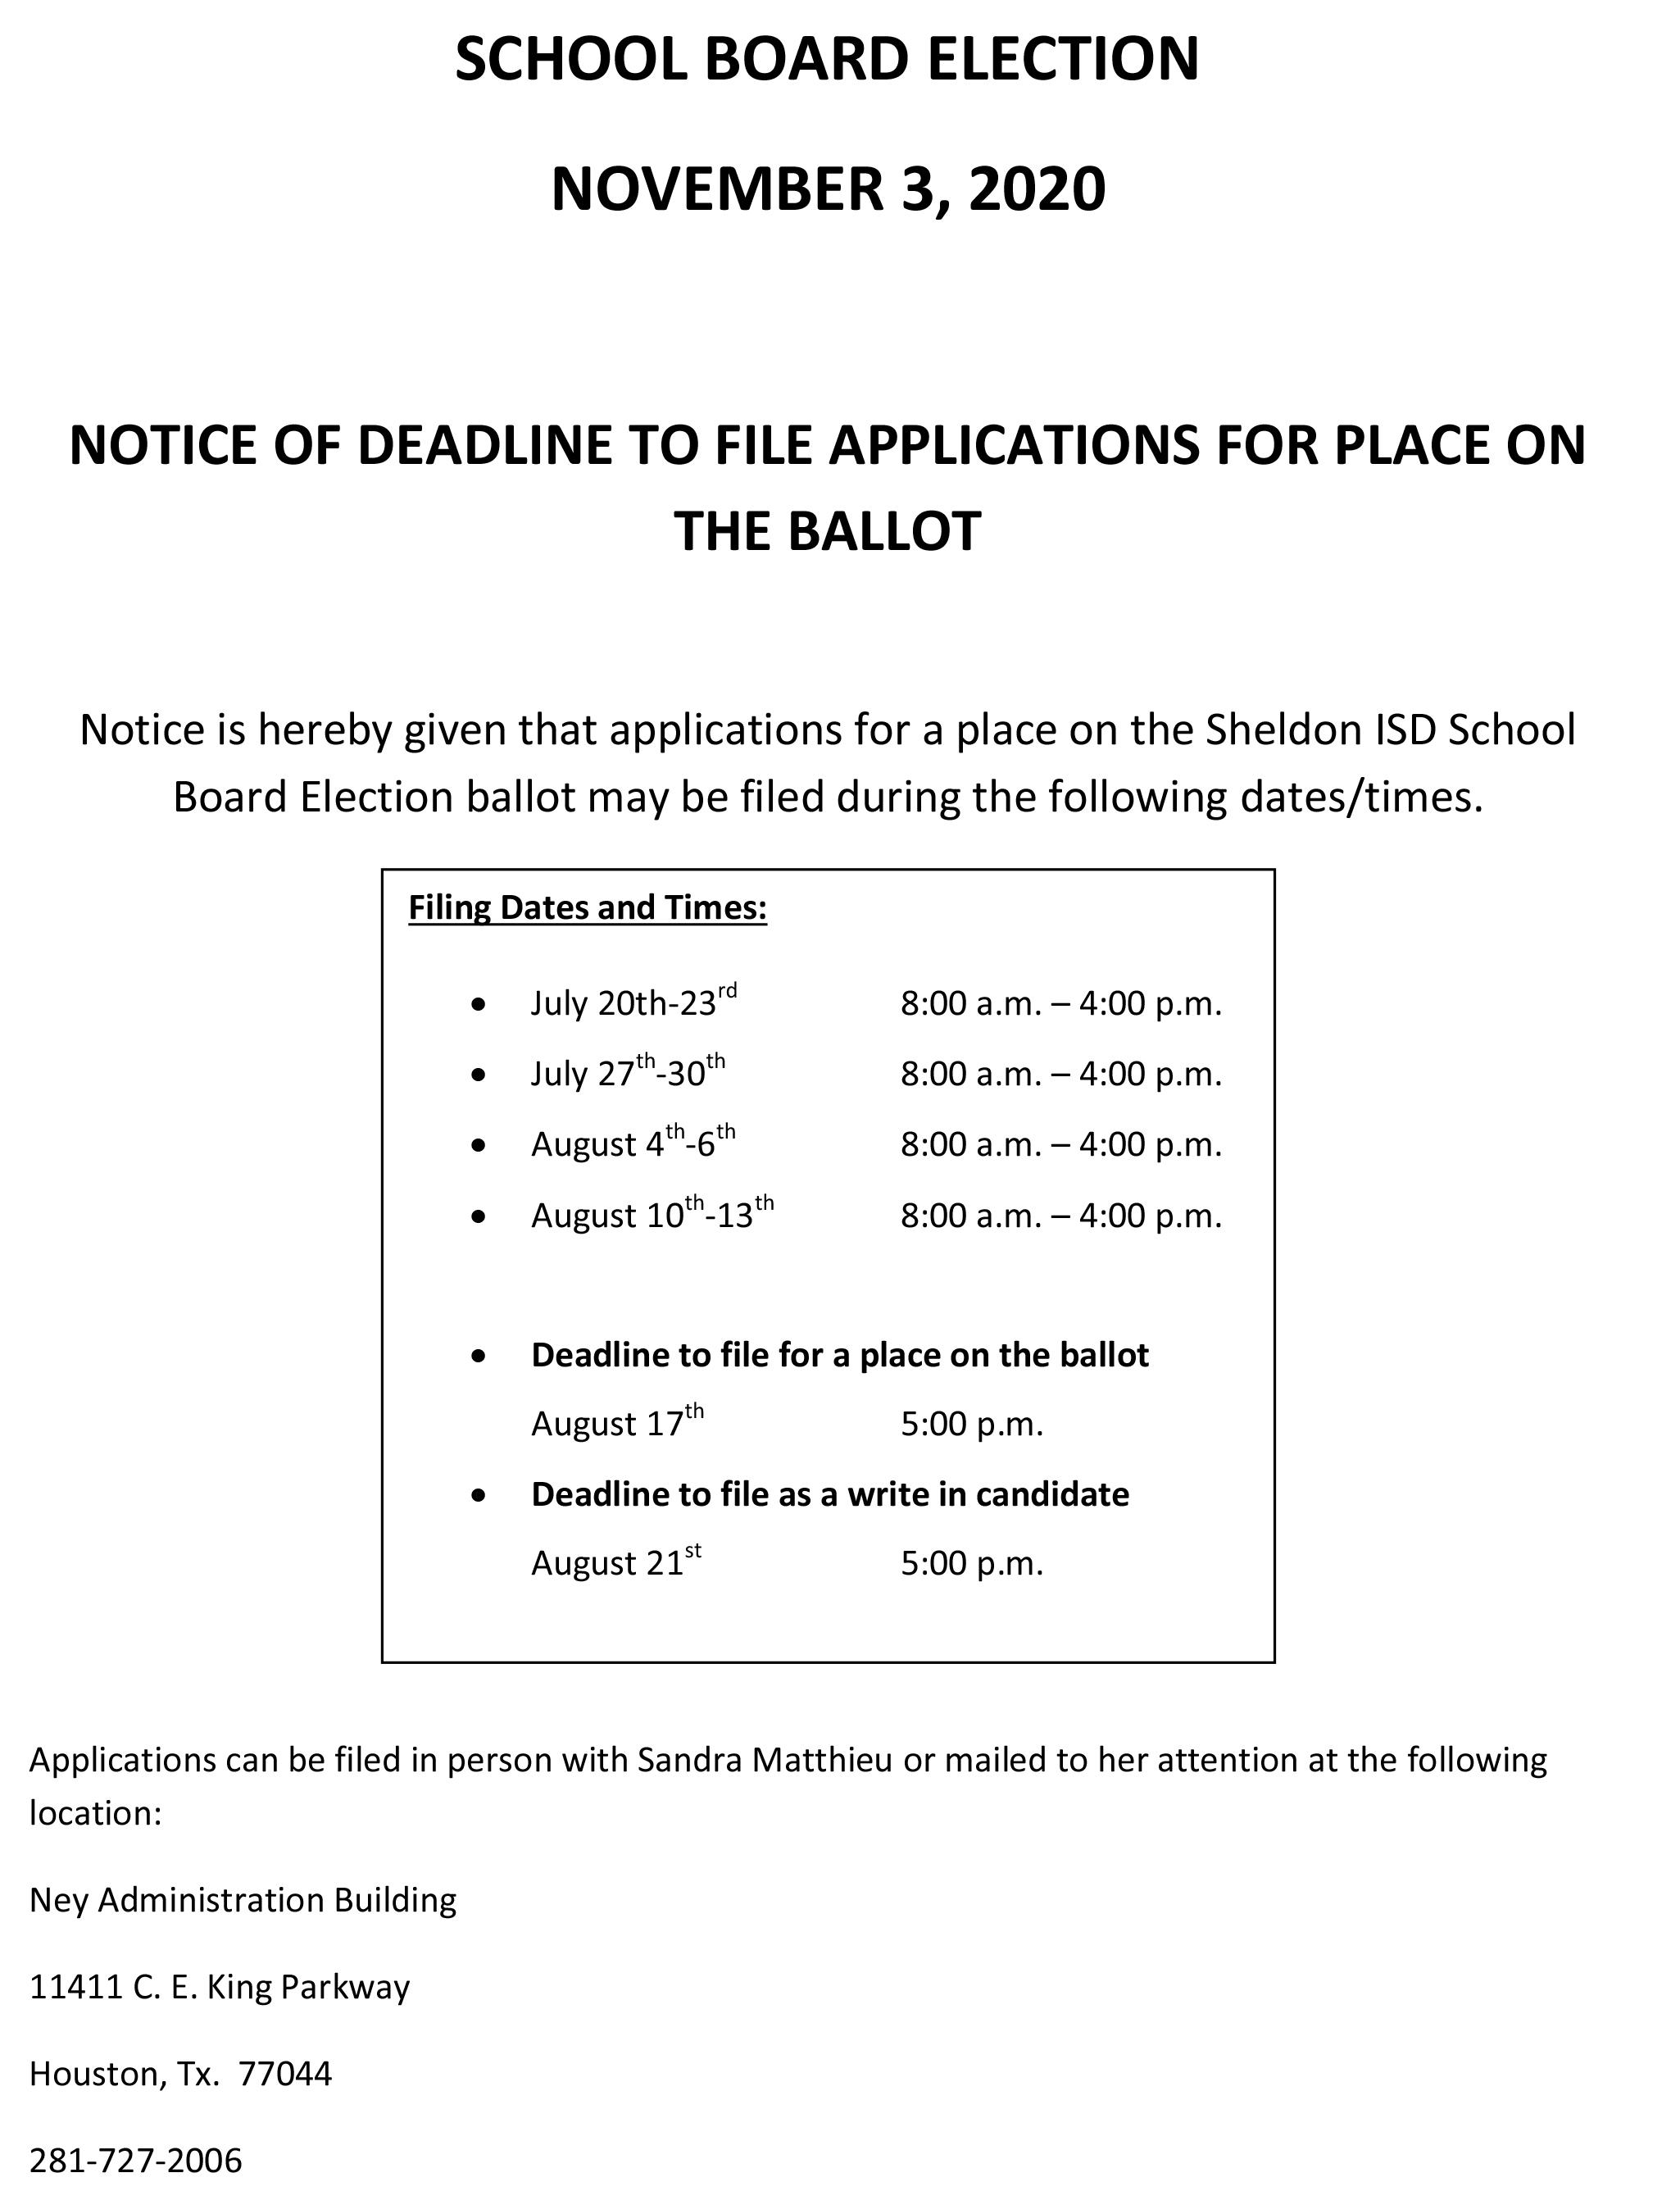 election_notification_information_for_nov_3_2020